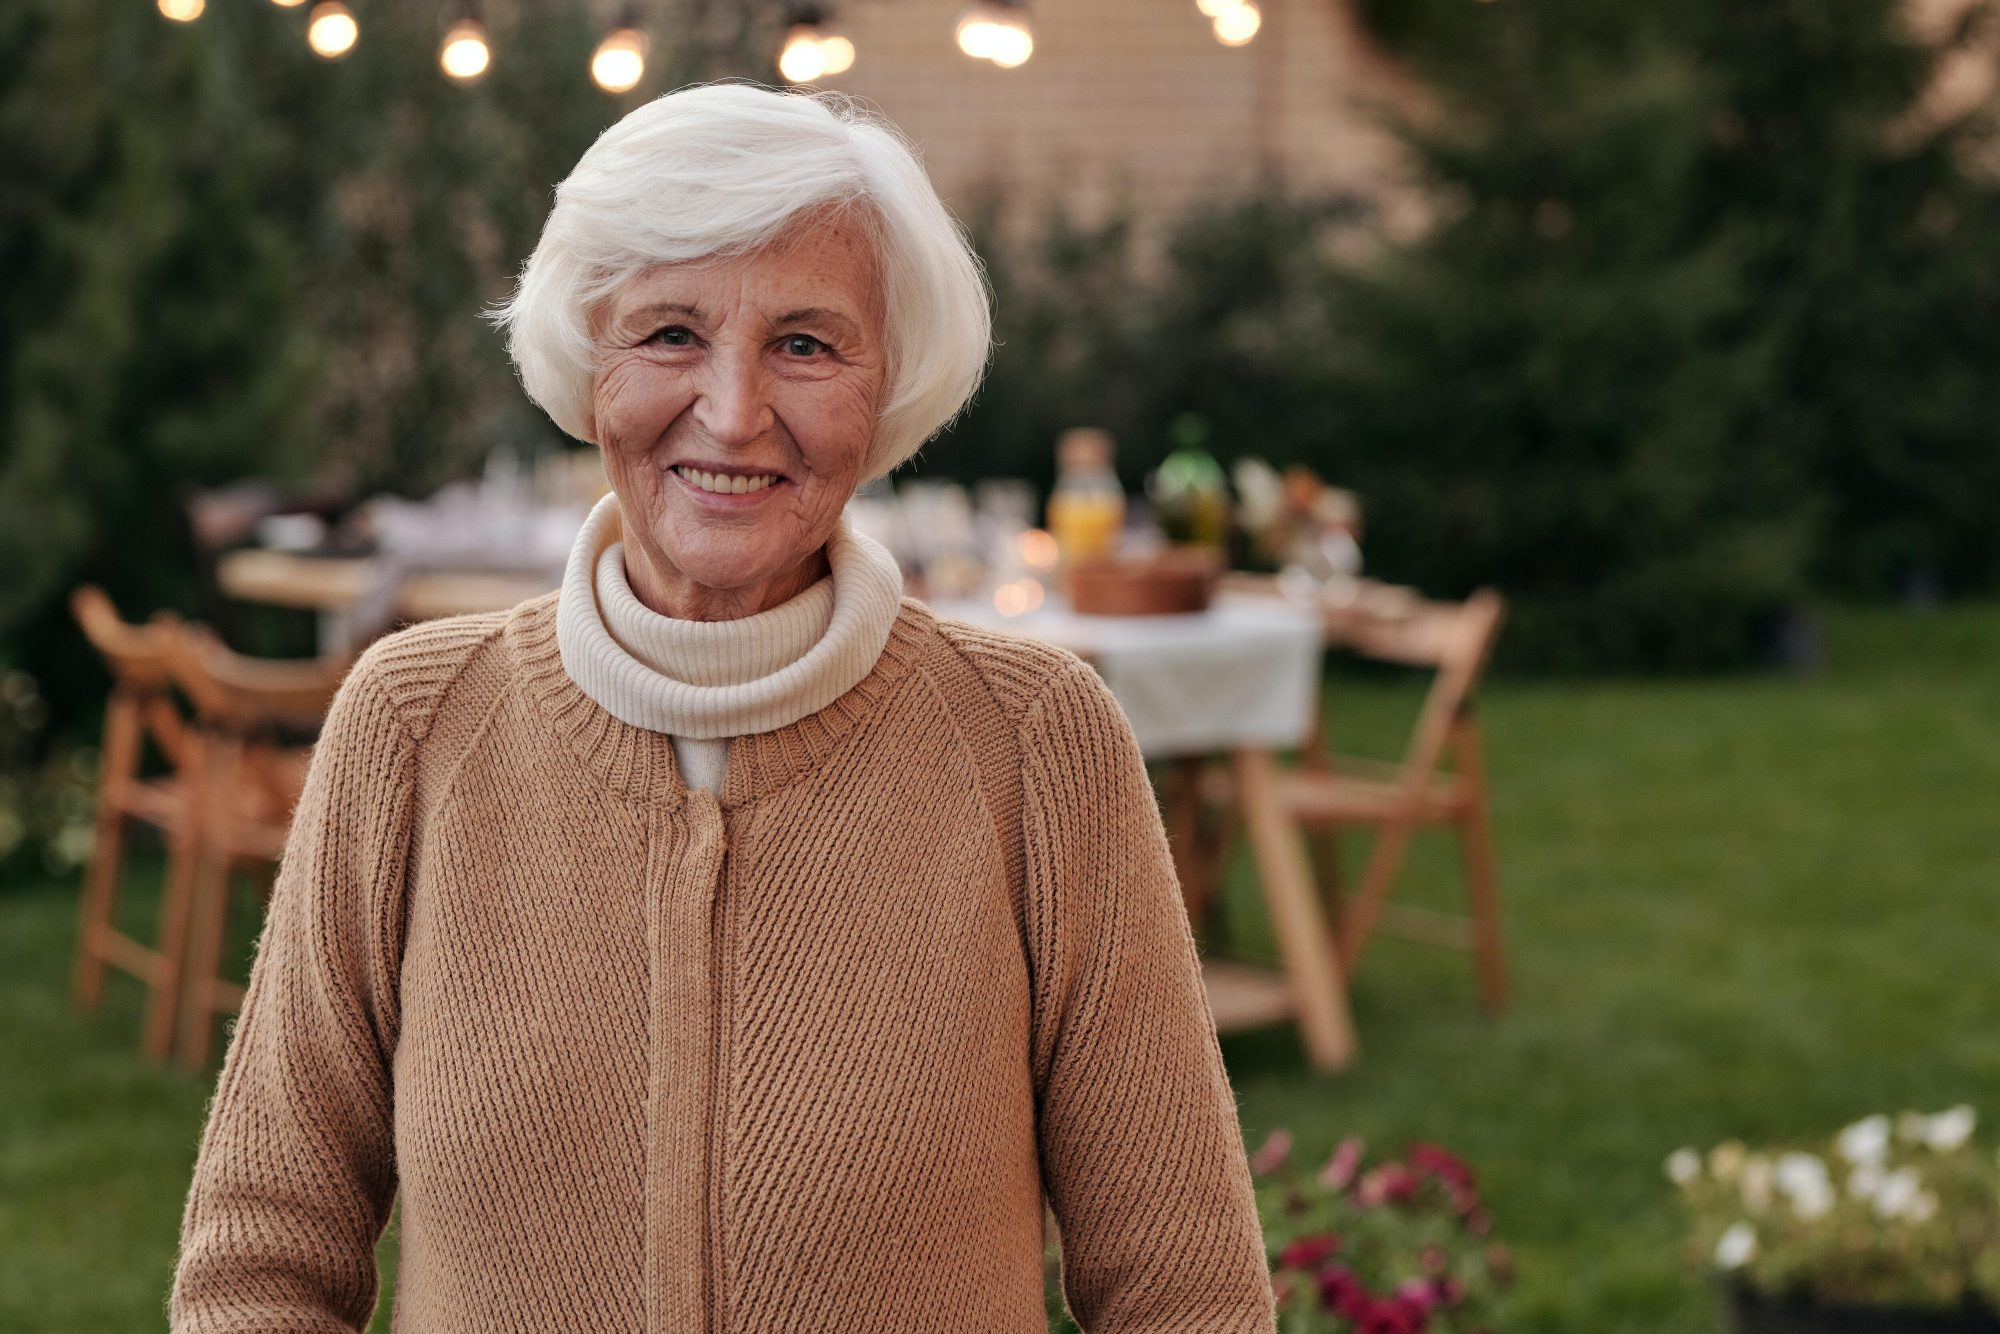 grandmother standing in front of outdoor dining table